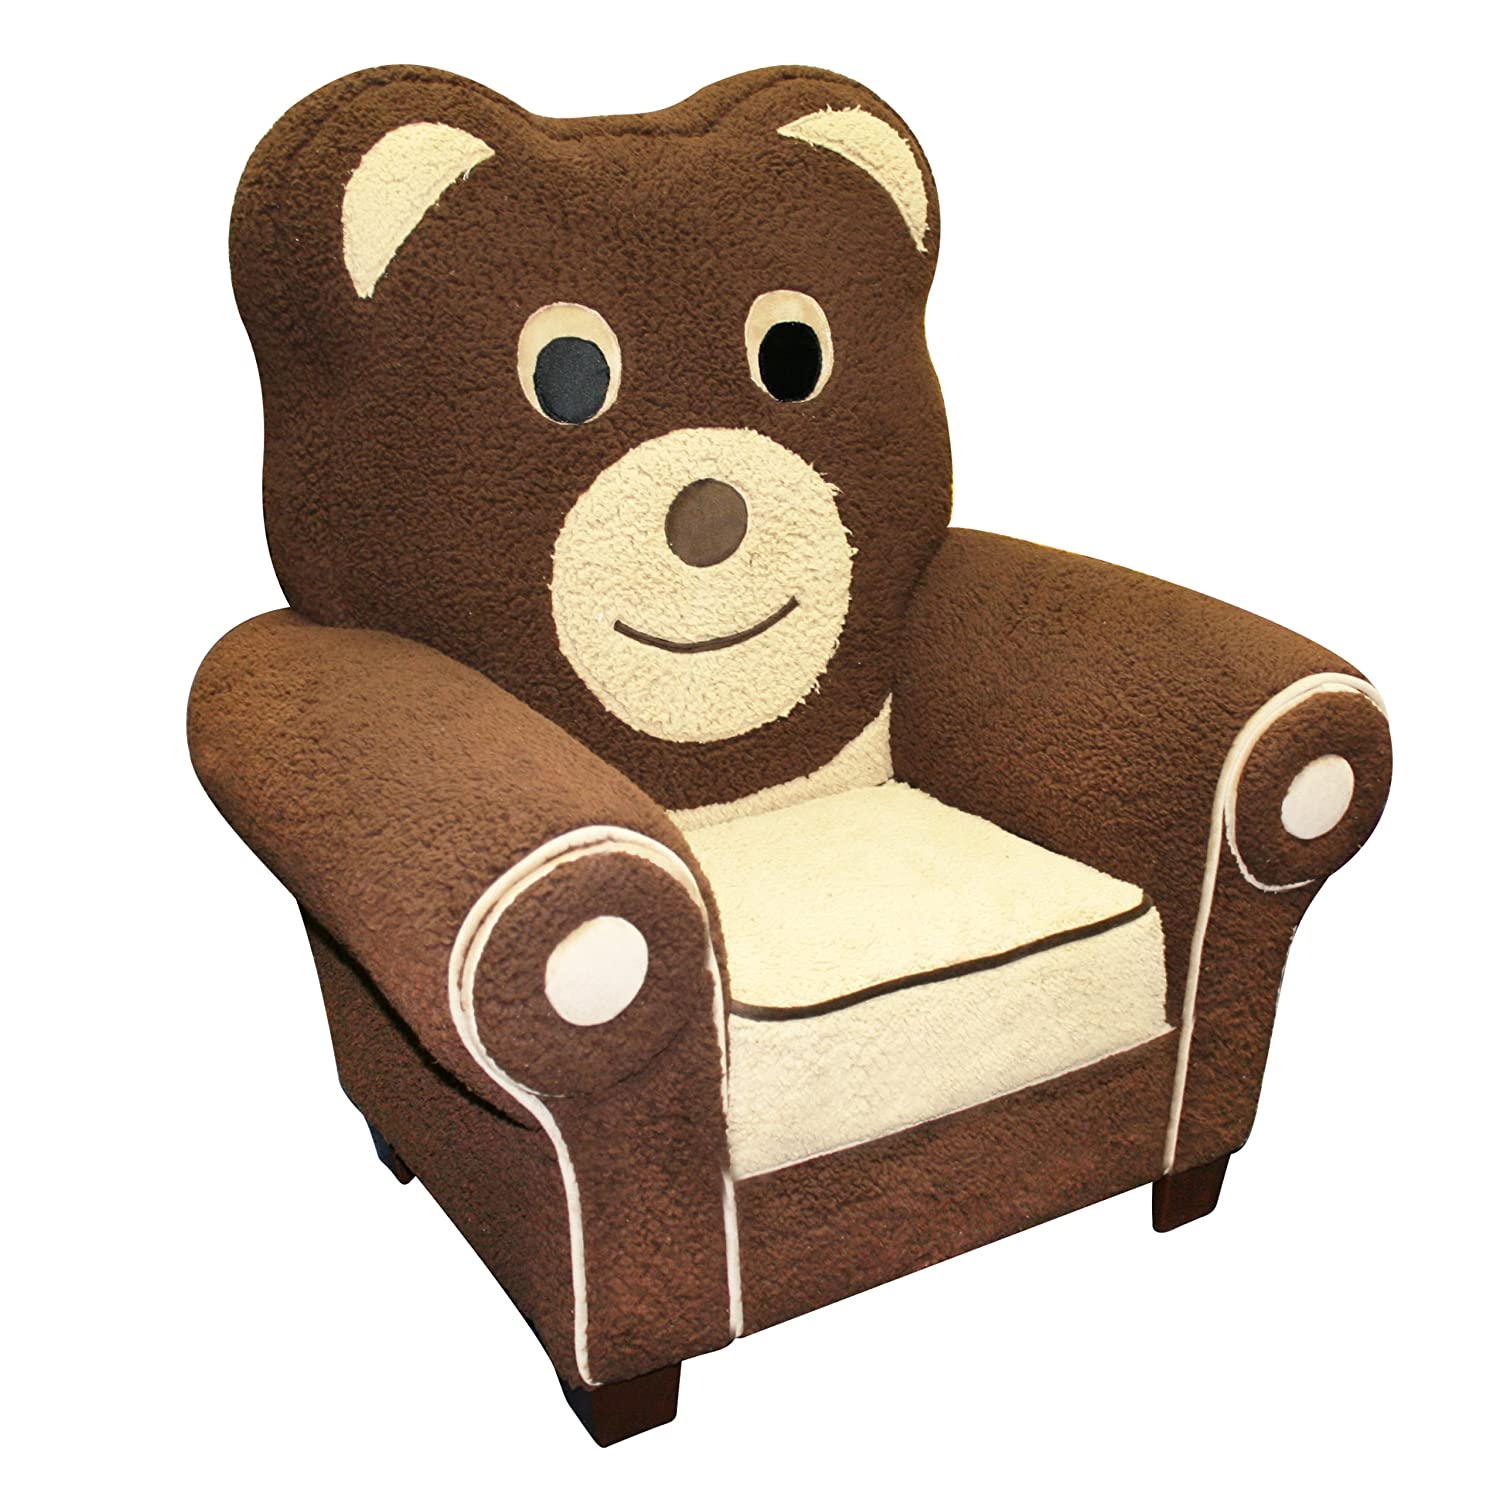 teddy bear furniture totally kids totally bedrooms kids bedroom ideas. Black Bedroom Furniture Sets. Home Design Ideas